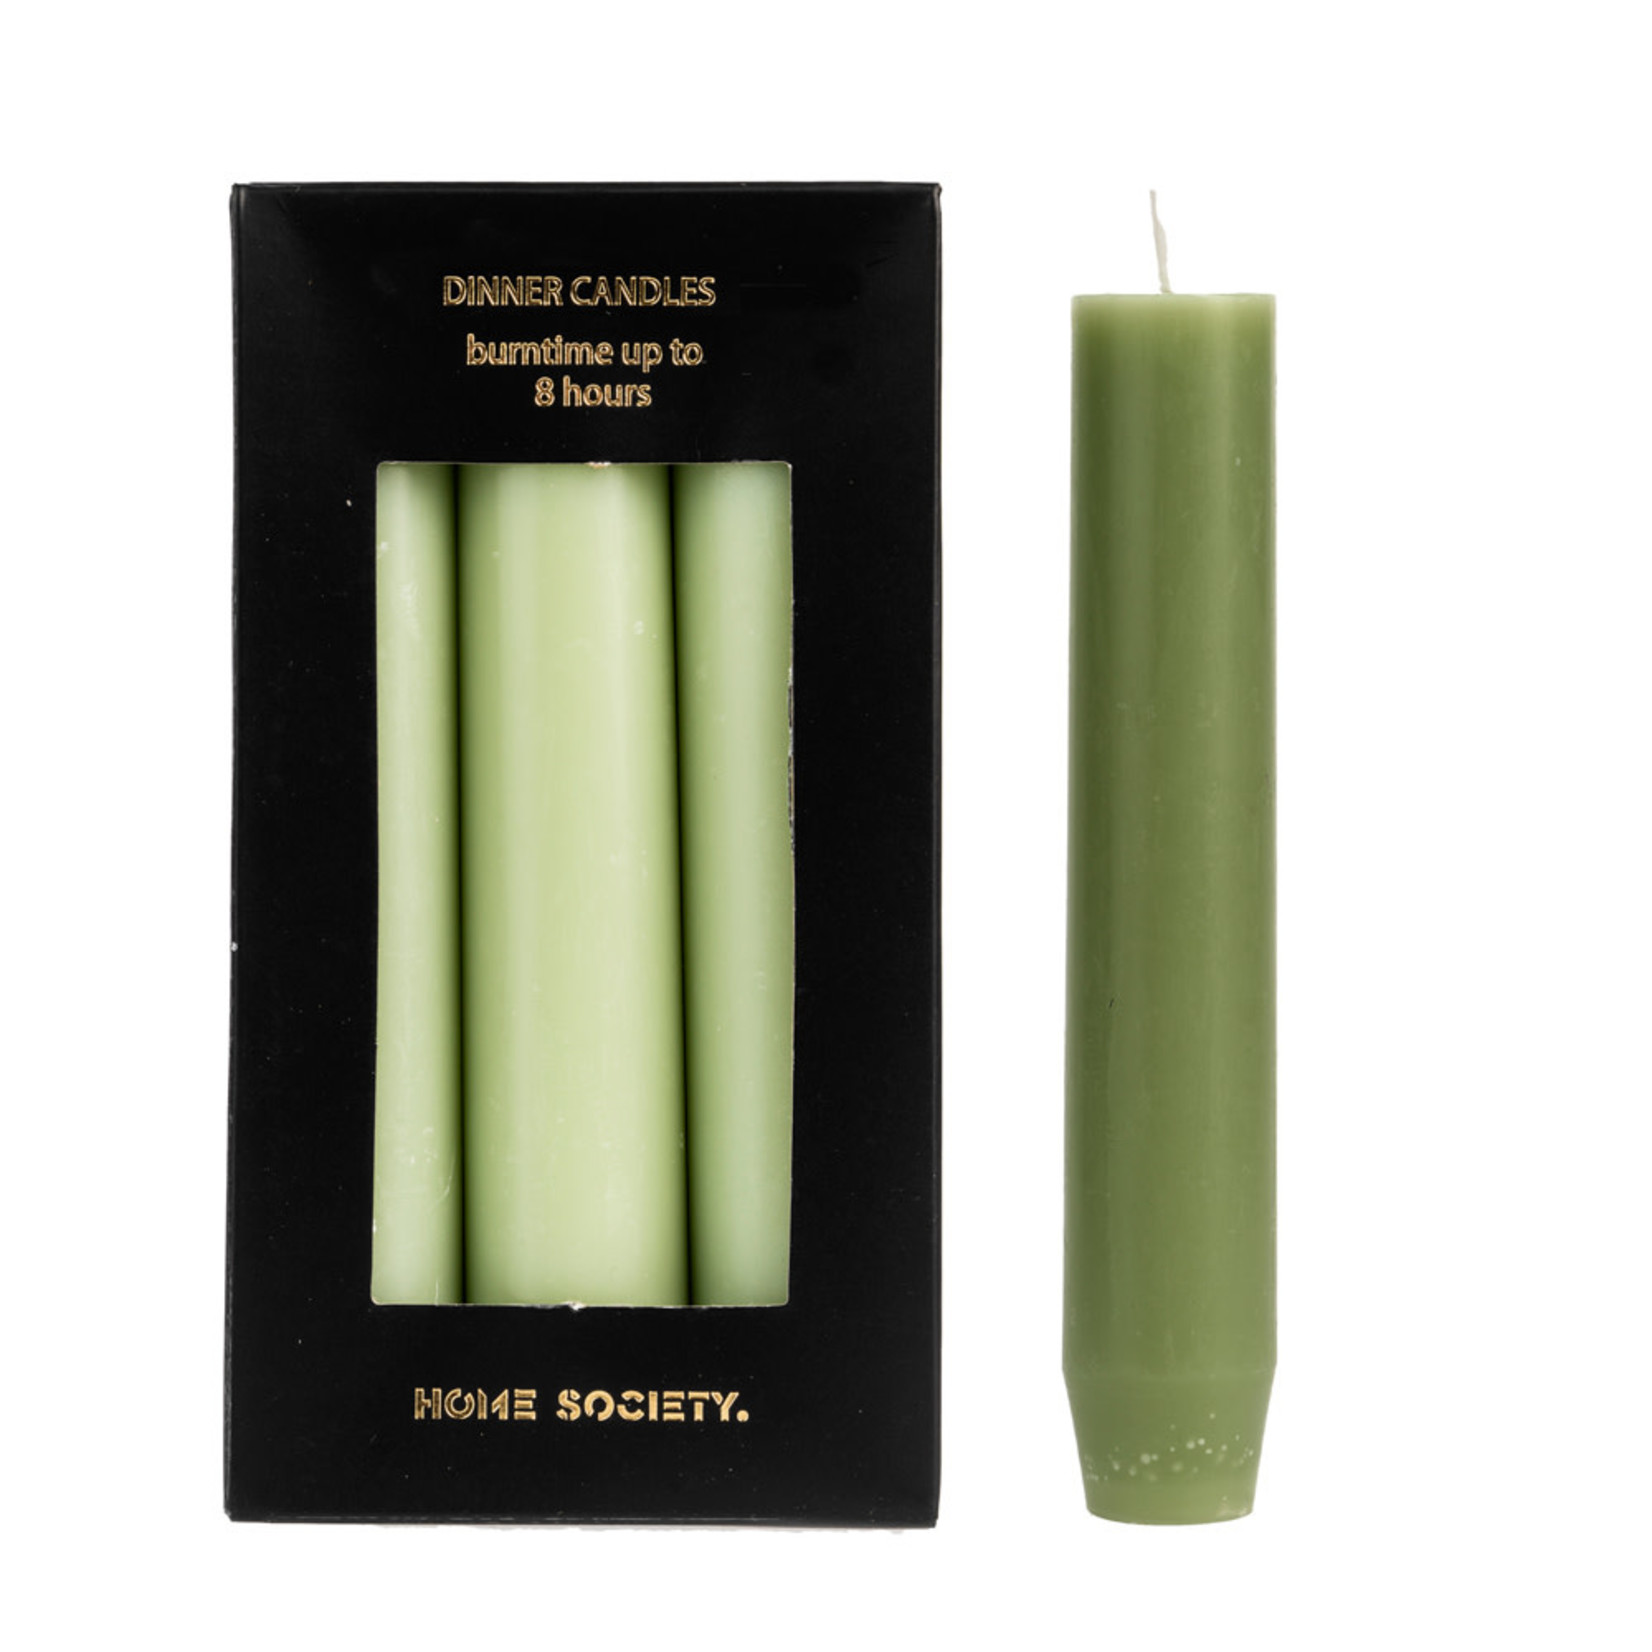 Home Society Dinner Candle S Light Green set 6